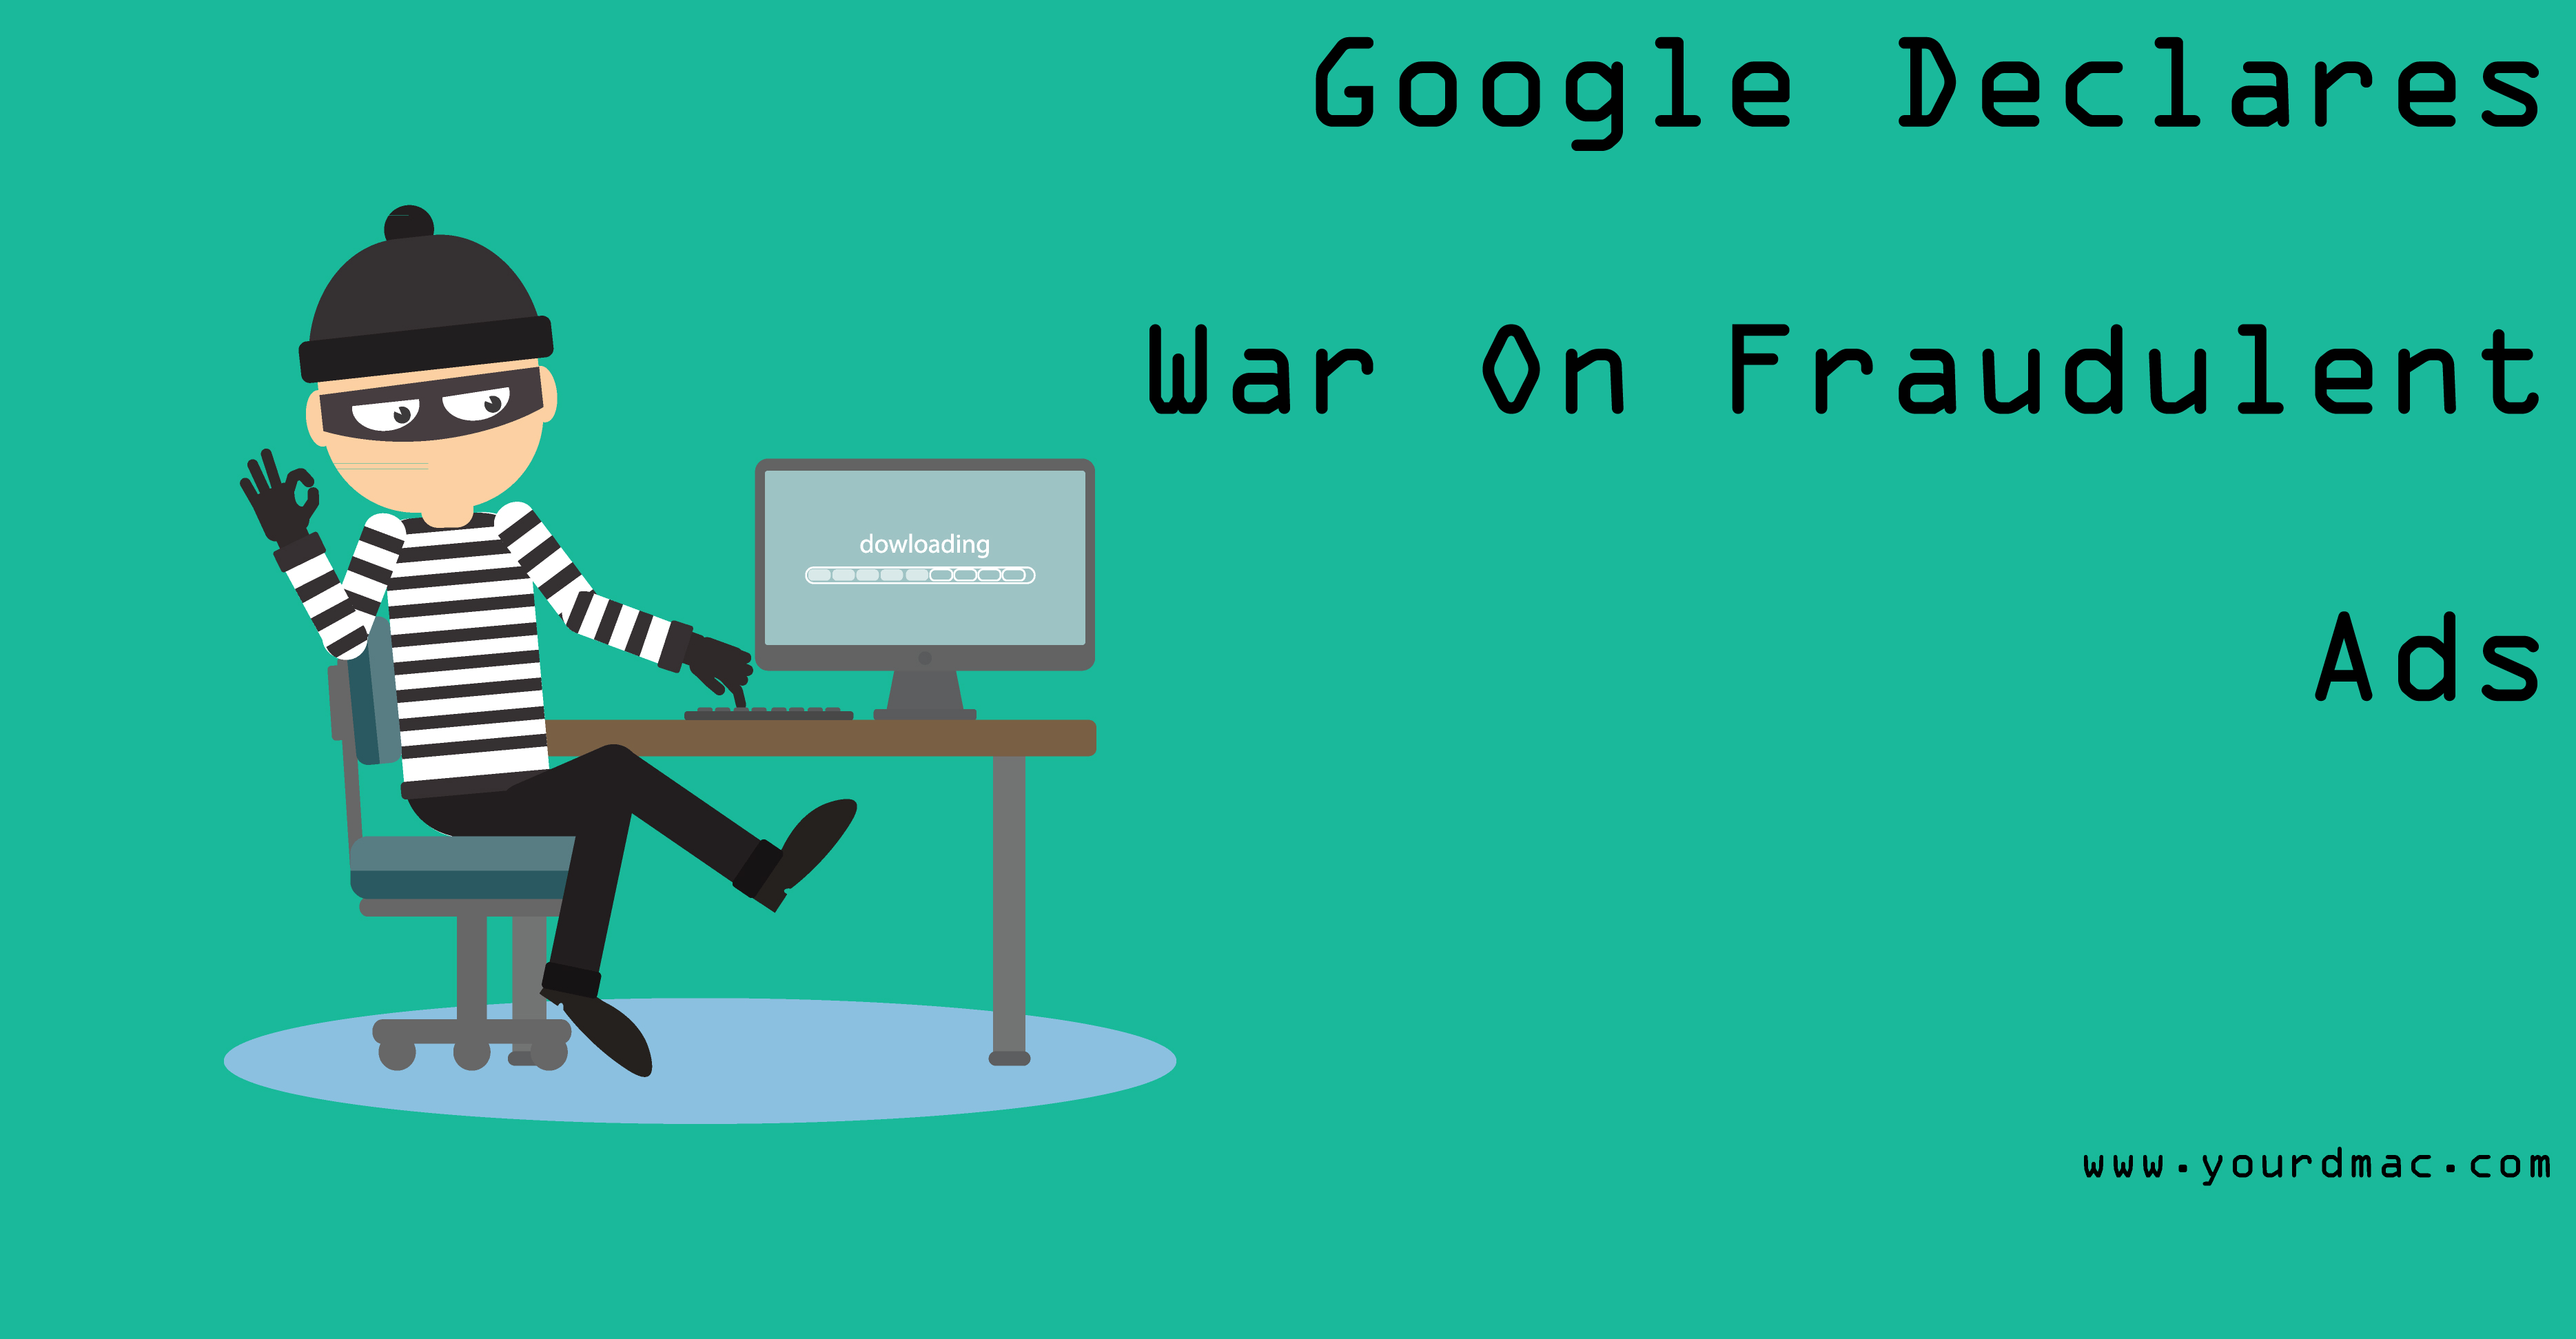 Google Declares War On Fraudulous Ads